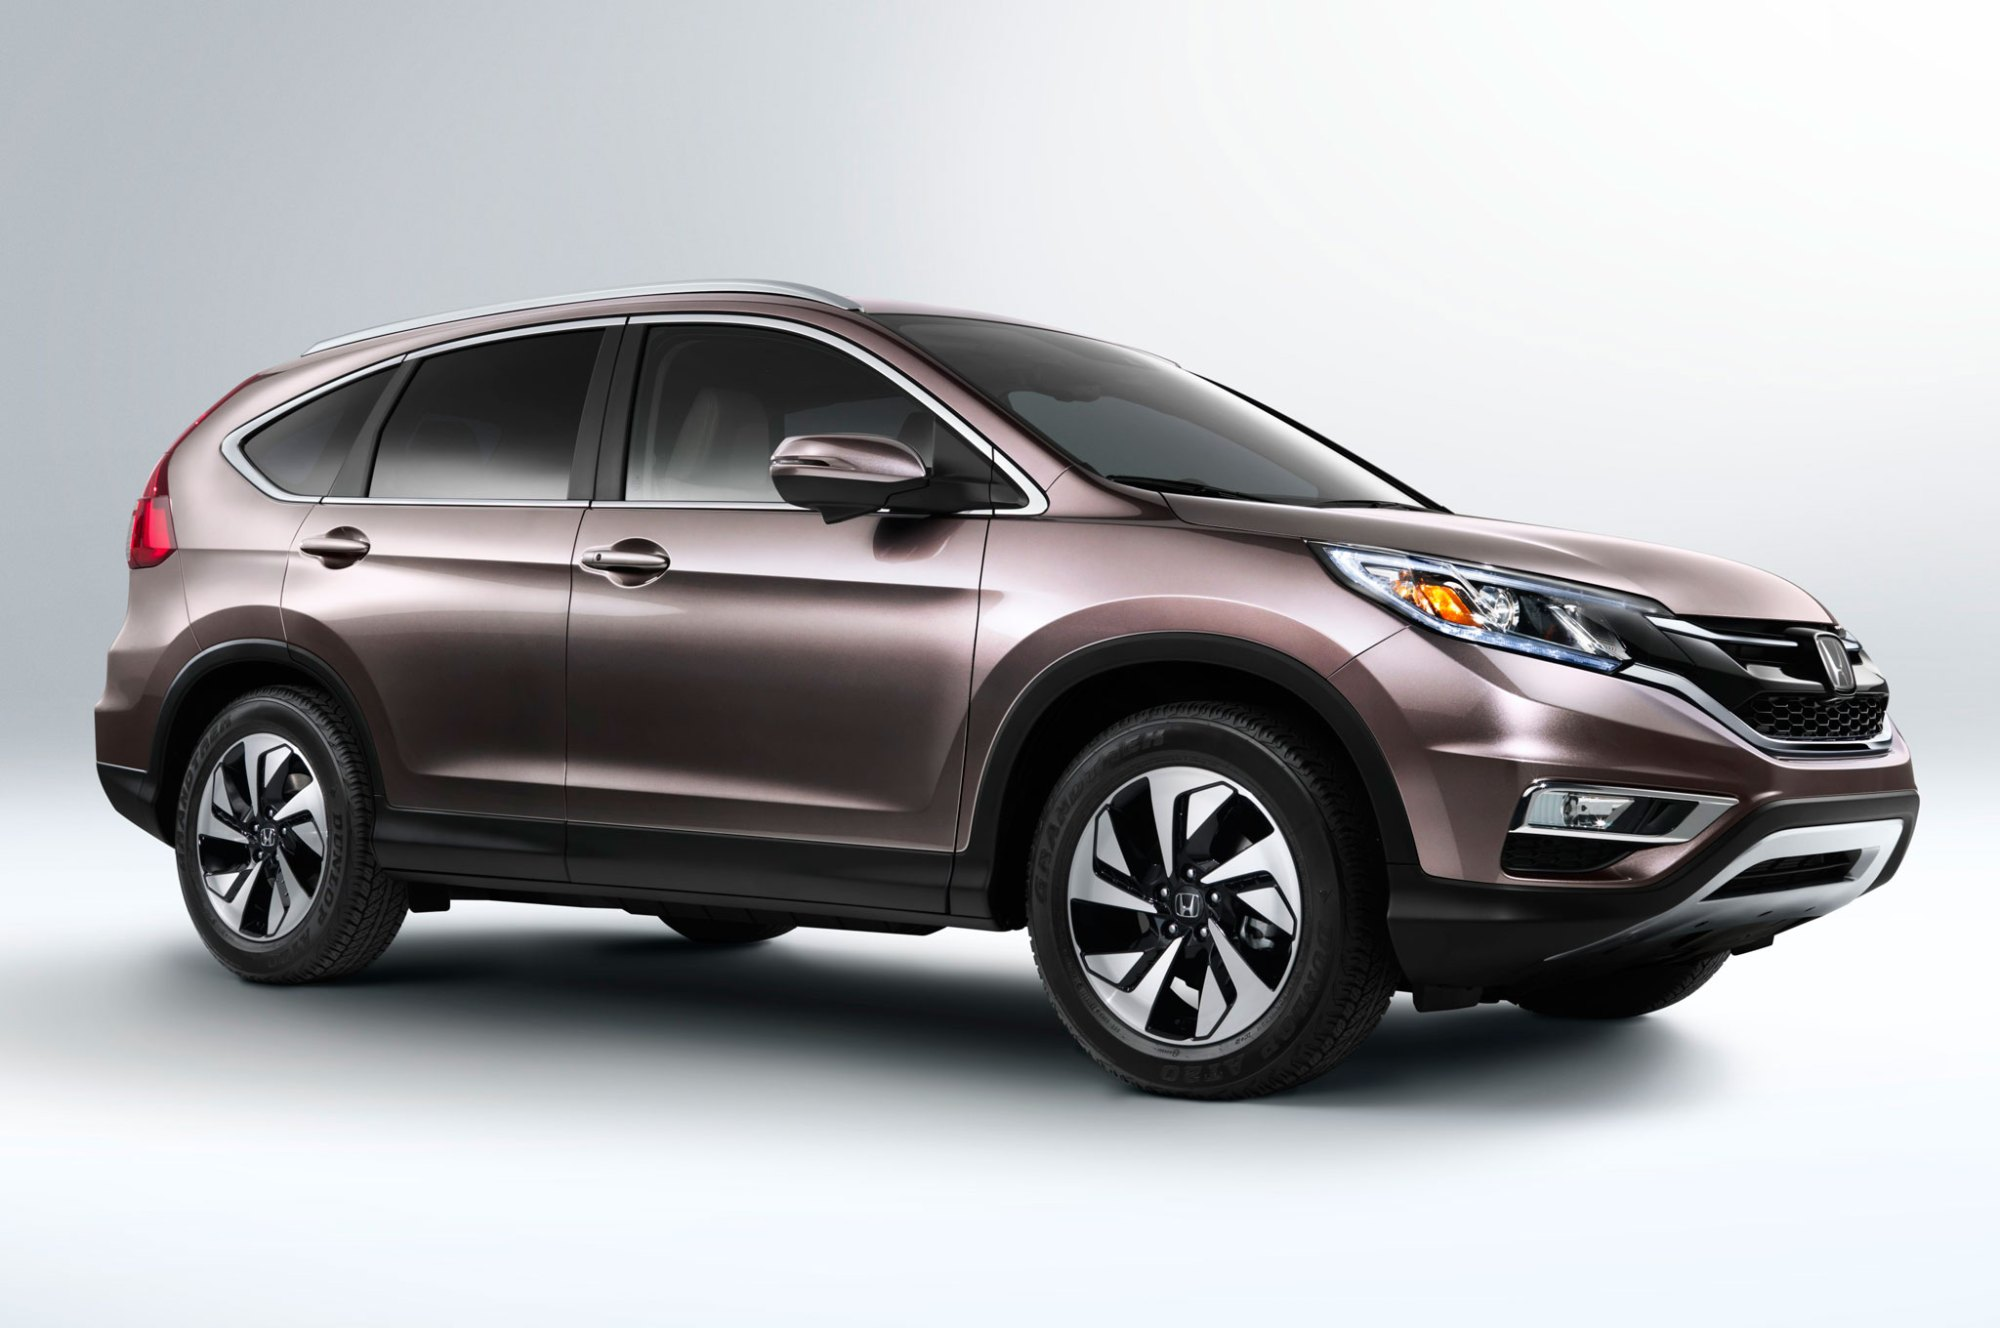 hight resolution of 2015 honda cr v refreshed with new engine improved mpg 2014 honda crv remote start 2015 honda crv wiring diagram trusted schematics diagram 2015